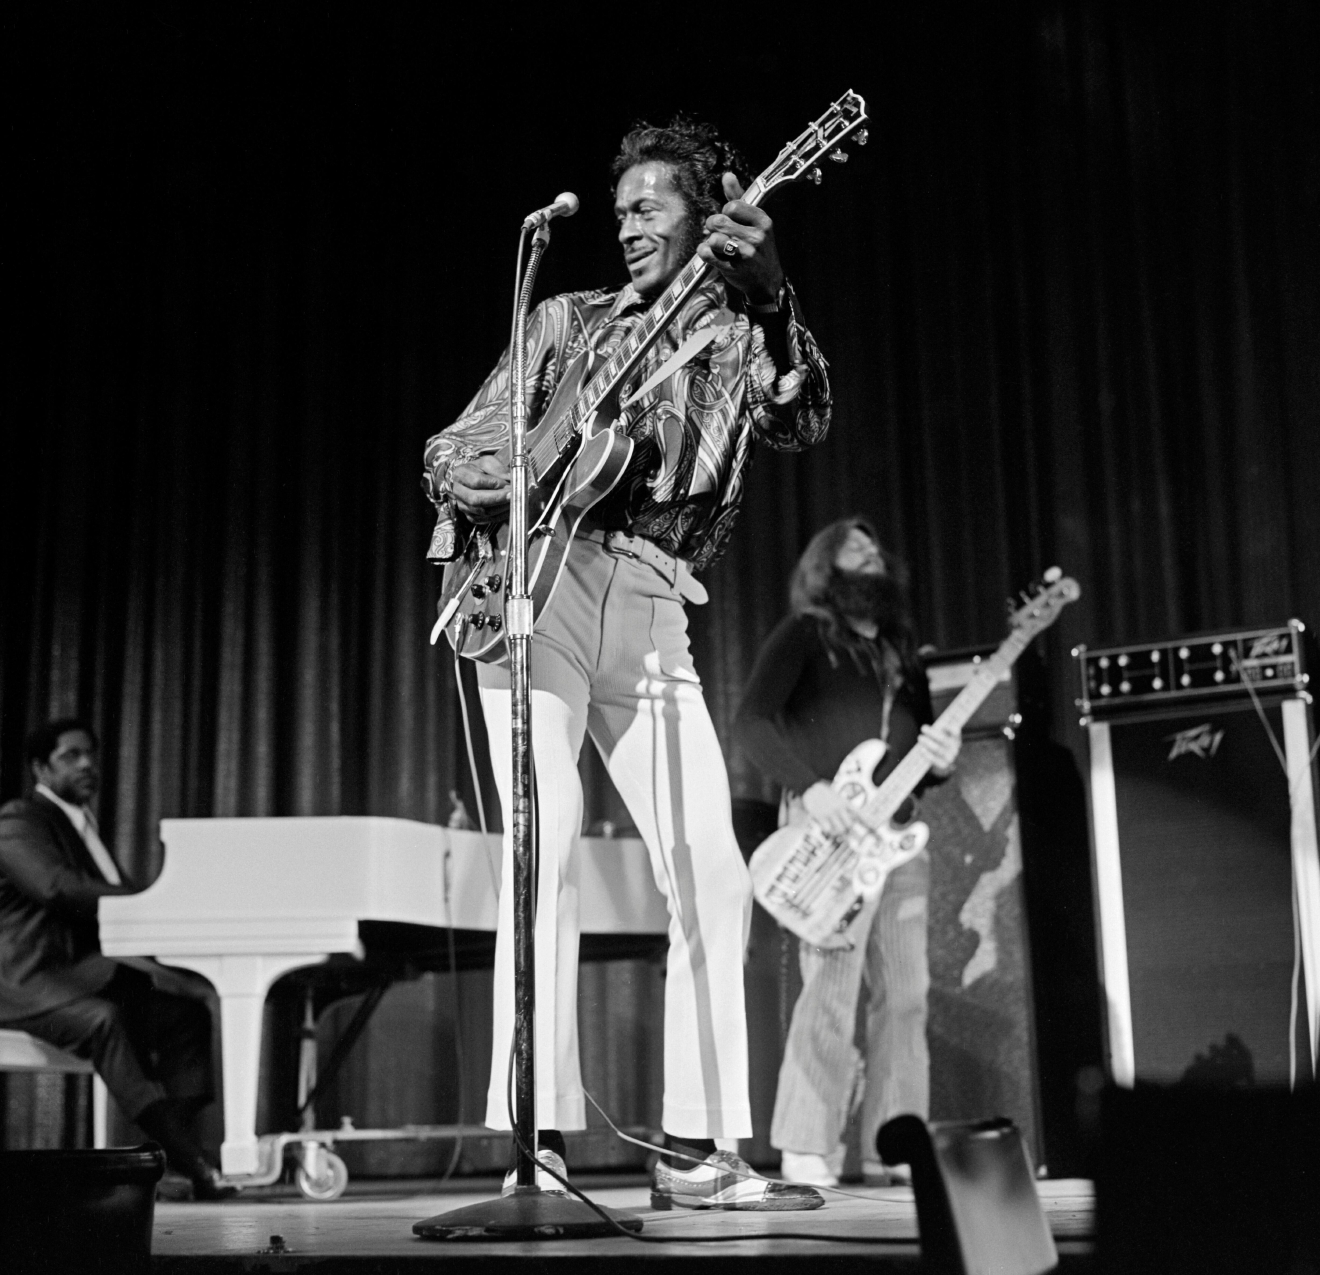 Chuck Berry performs at the Las Vegas Hilton Wednesday, March 8, 1972. [Gary Angel/Las Vegas News Bureau]